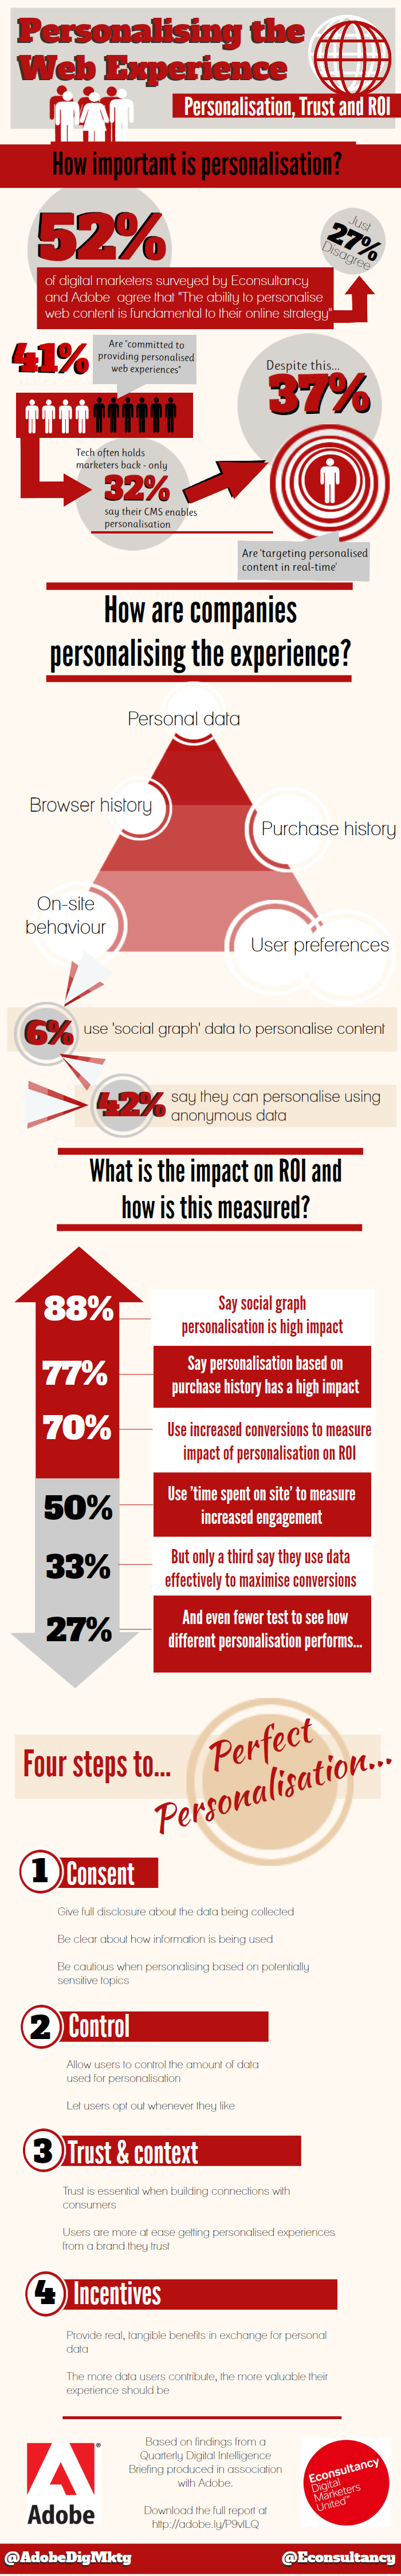 Website personalization trends-infographic